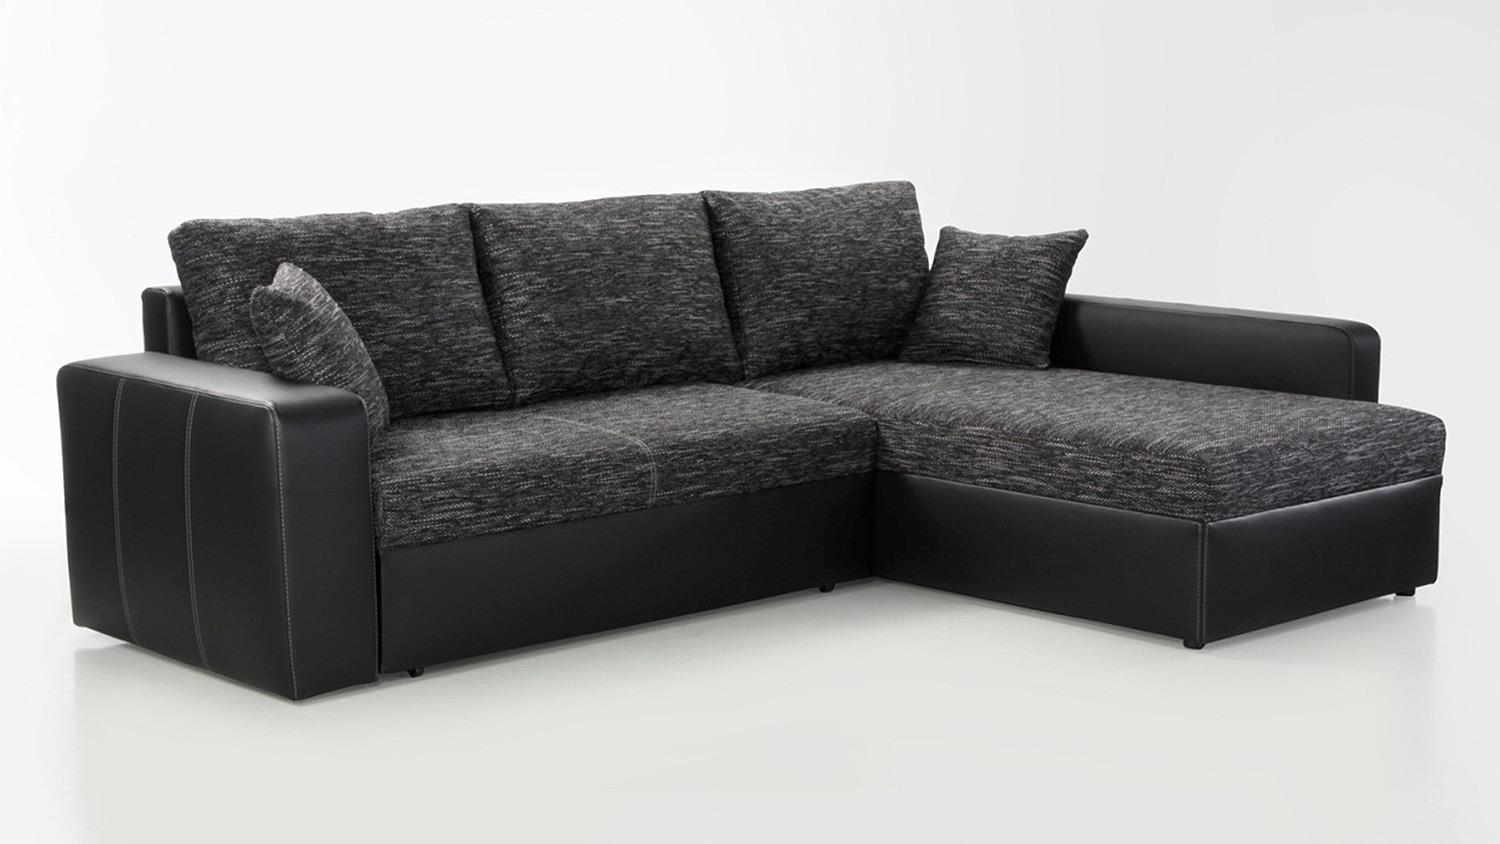 Ecksofa viper sofa in schwarz anthrazit mit bettfunktion for Sofa mit bettfunktion